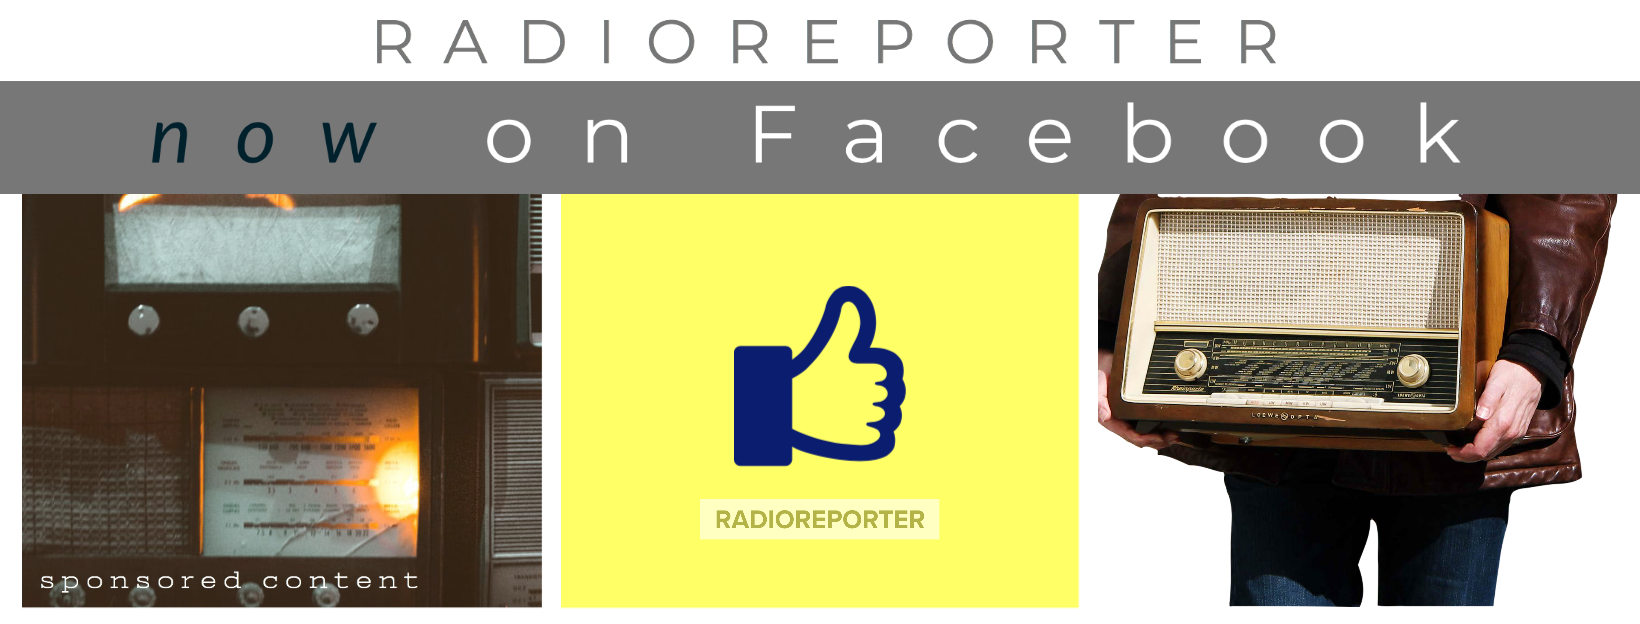 RadioReporter now on Facebook